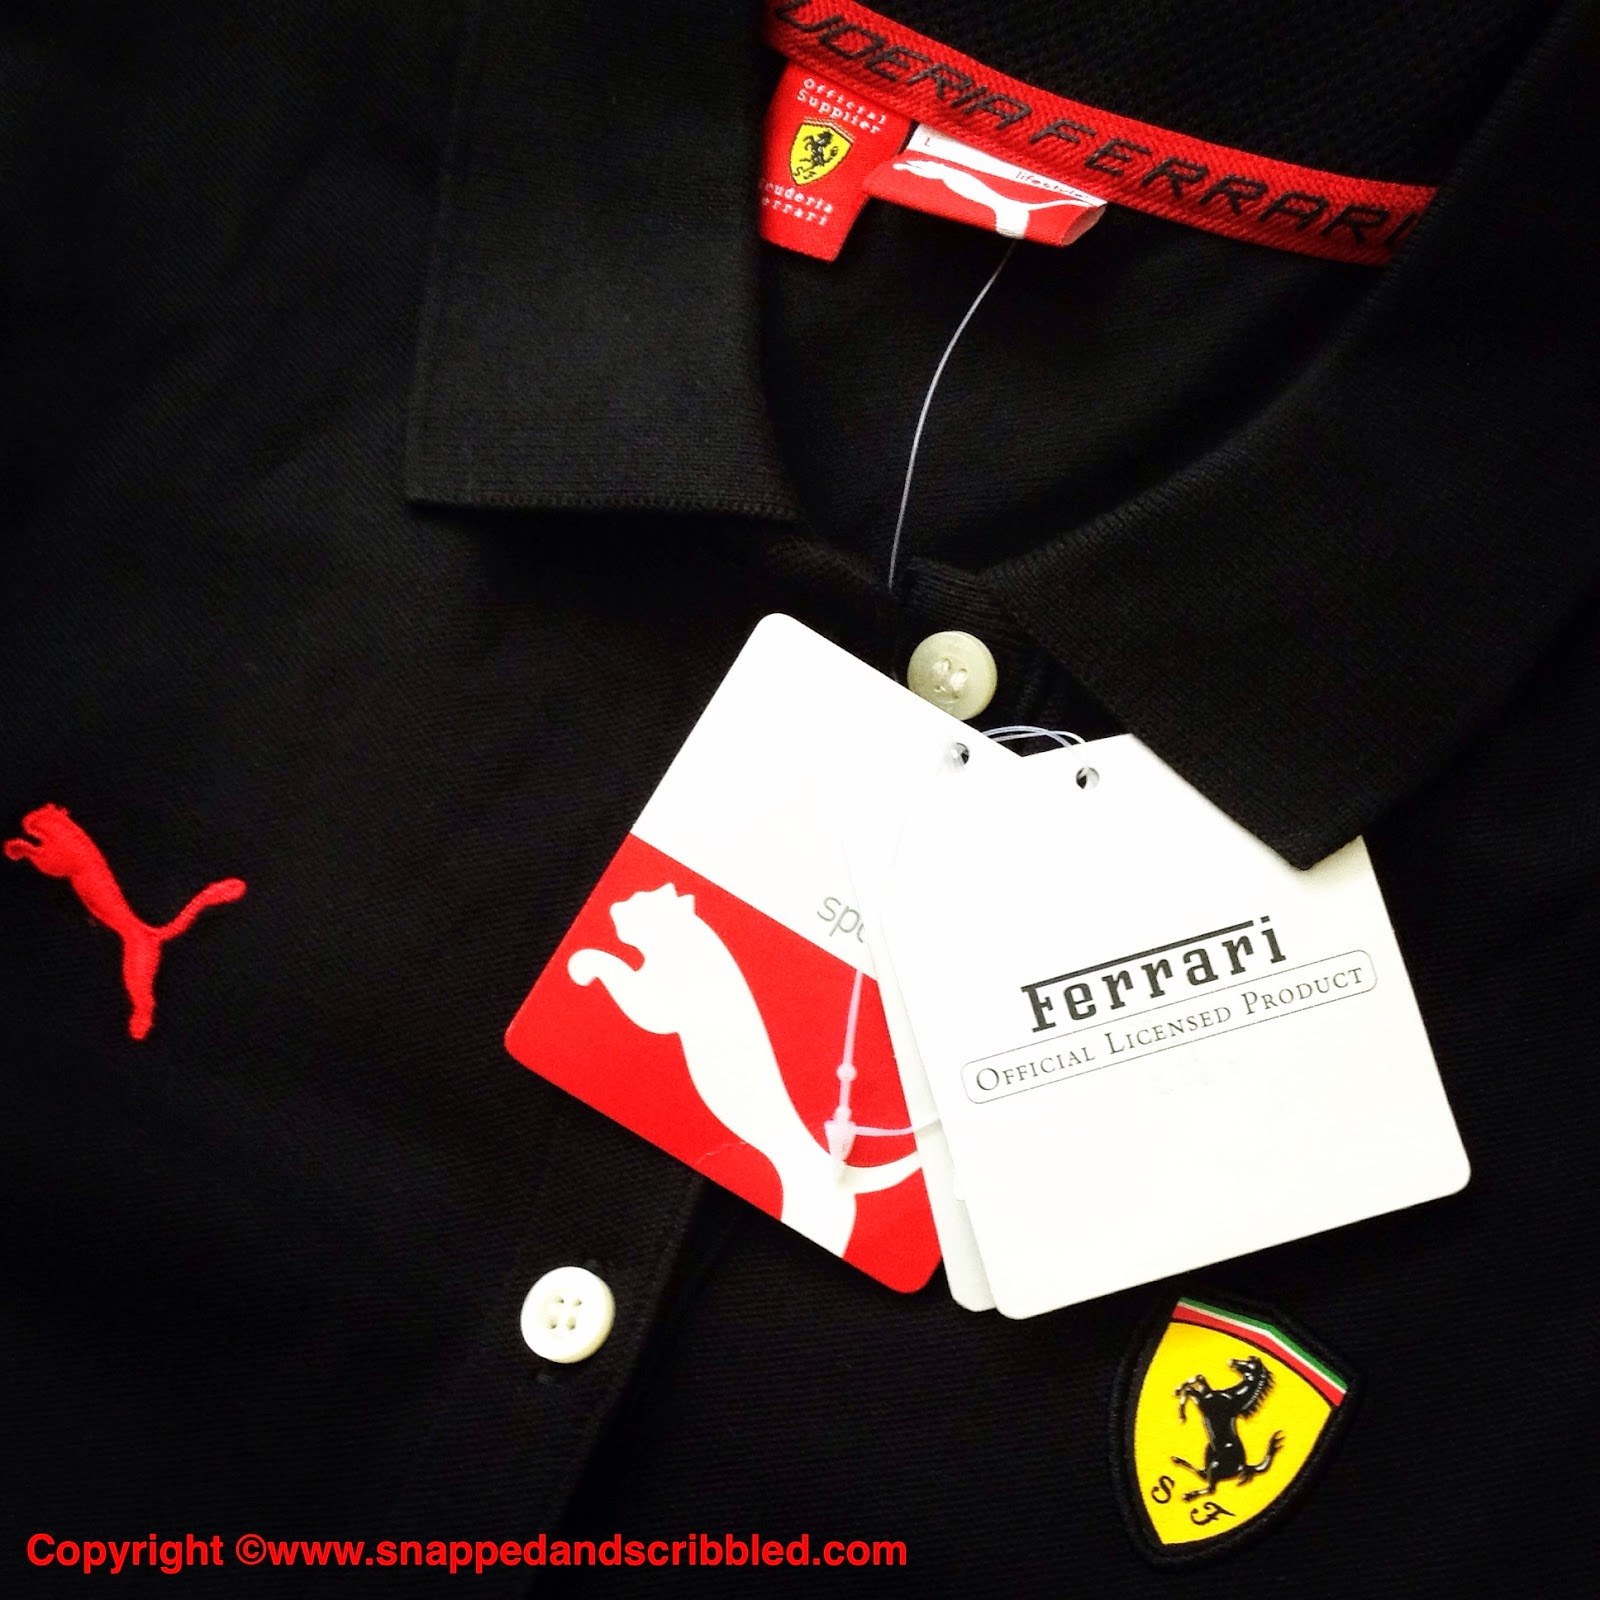 Scuderia Ferrari Clothing